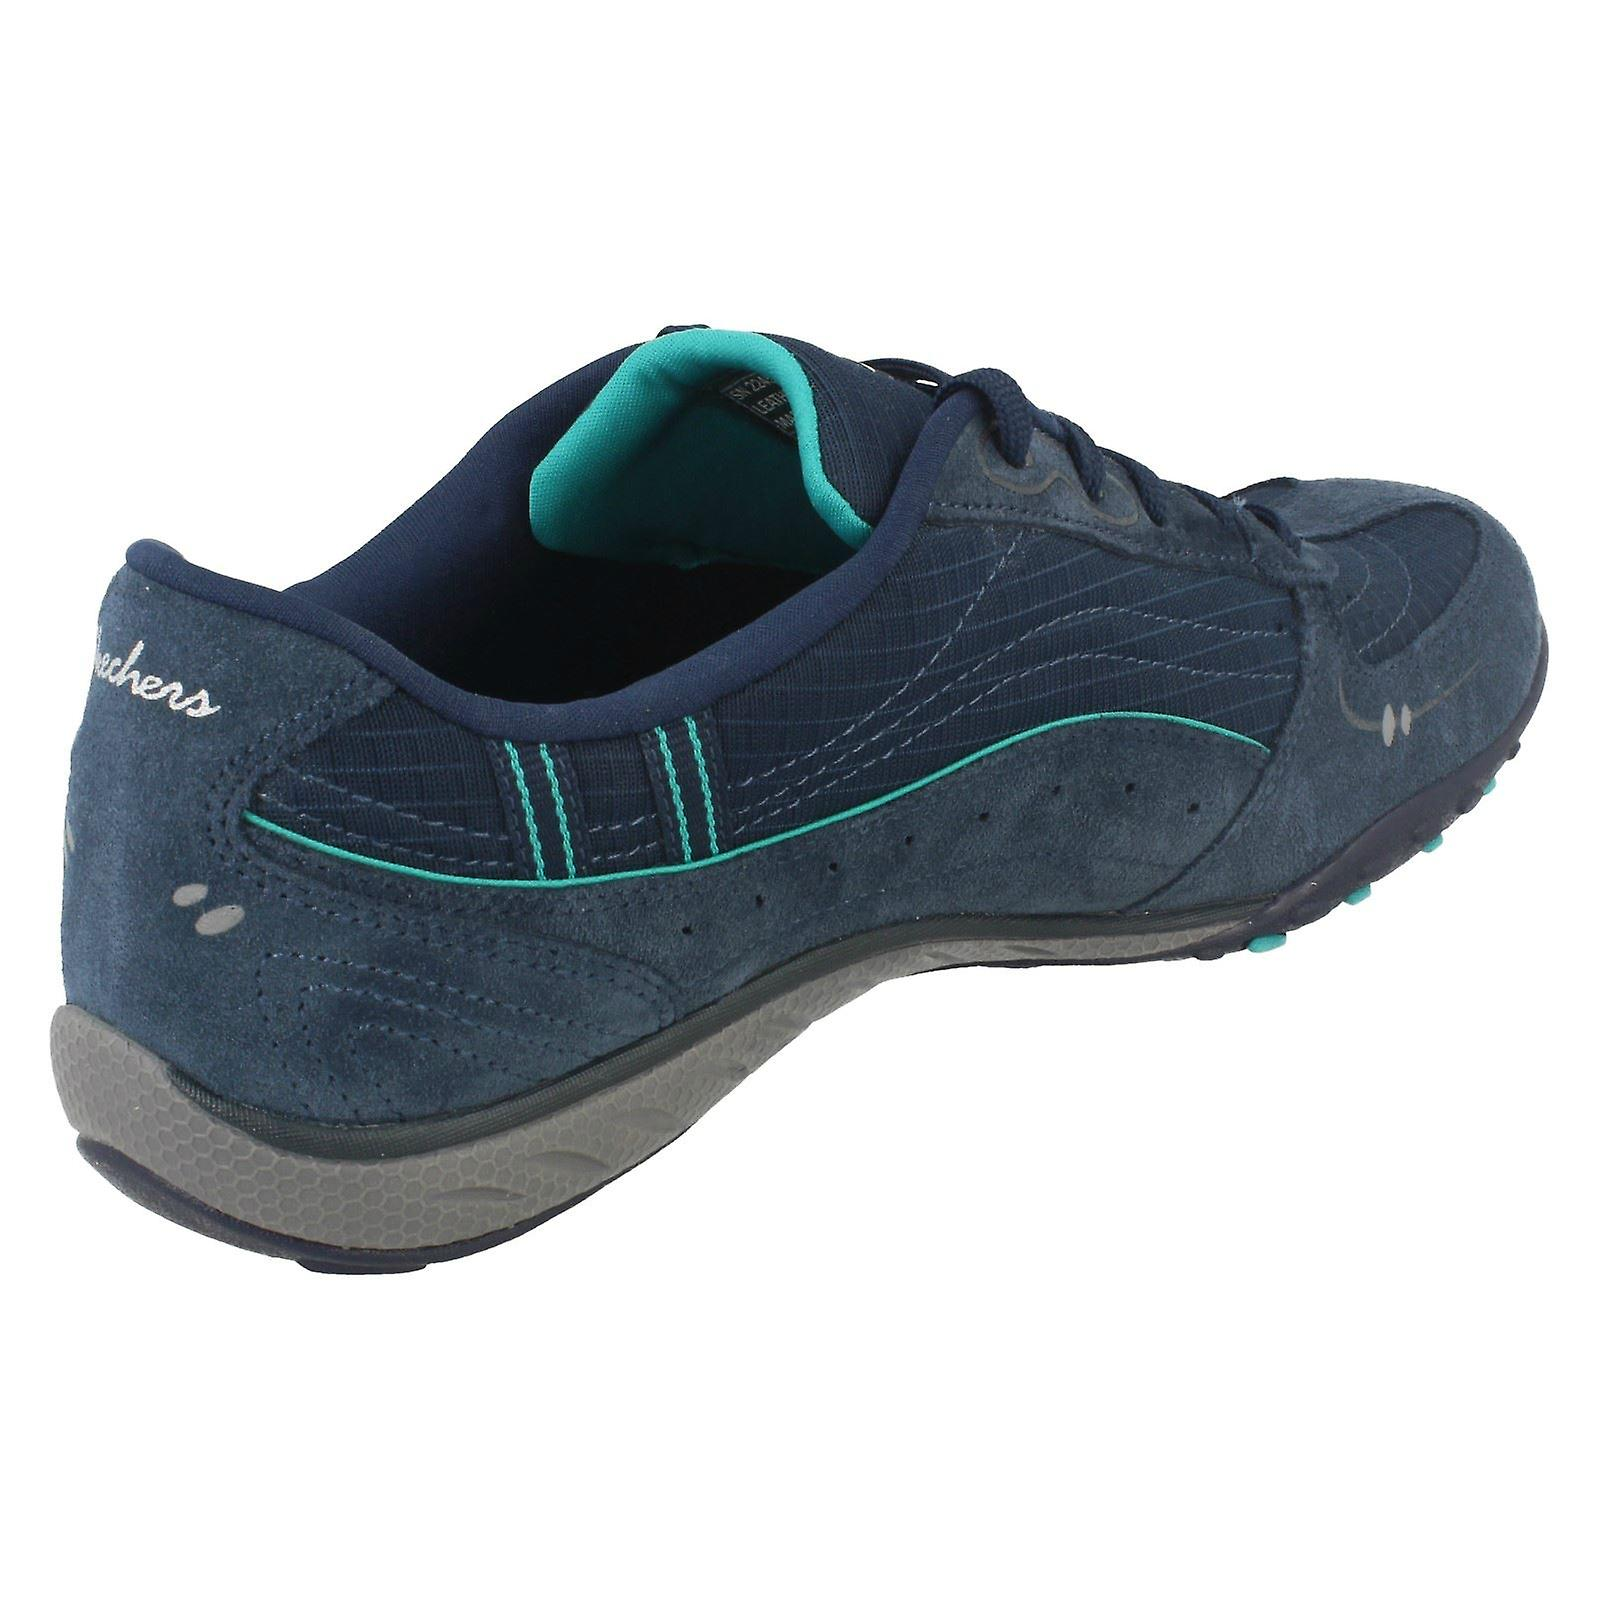 Details about Skechers Womens Navy Aqua Blue Breathe Easy Just Relax Trainers